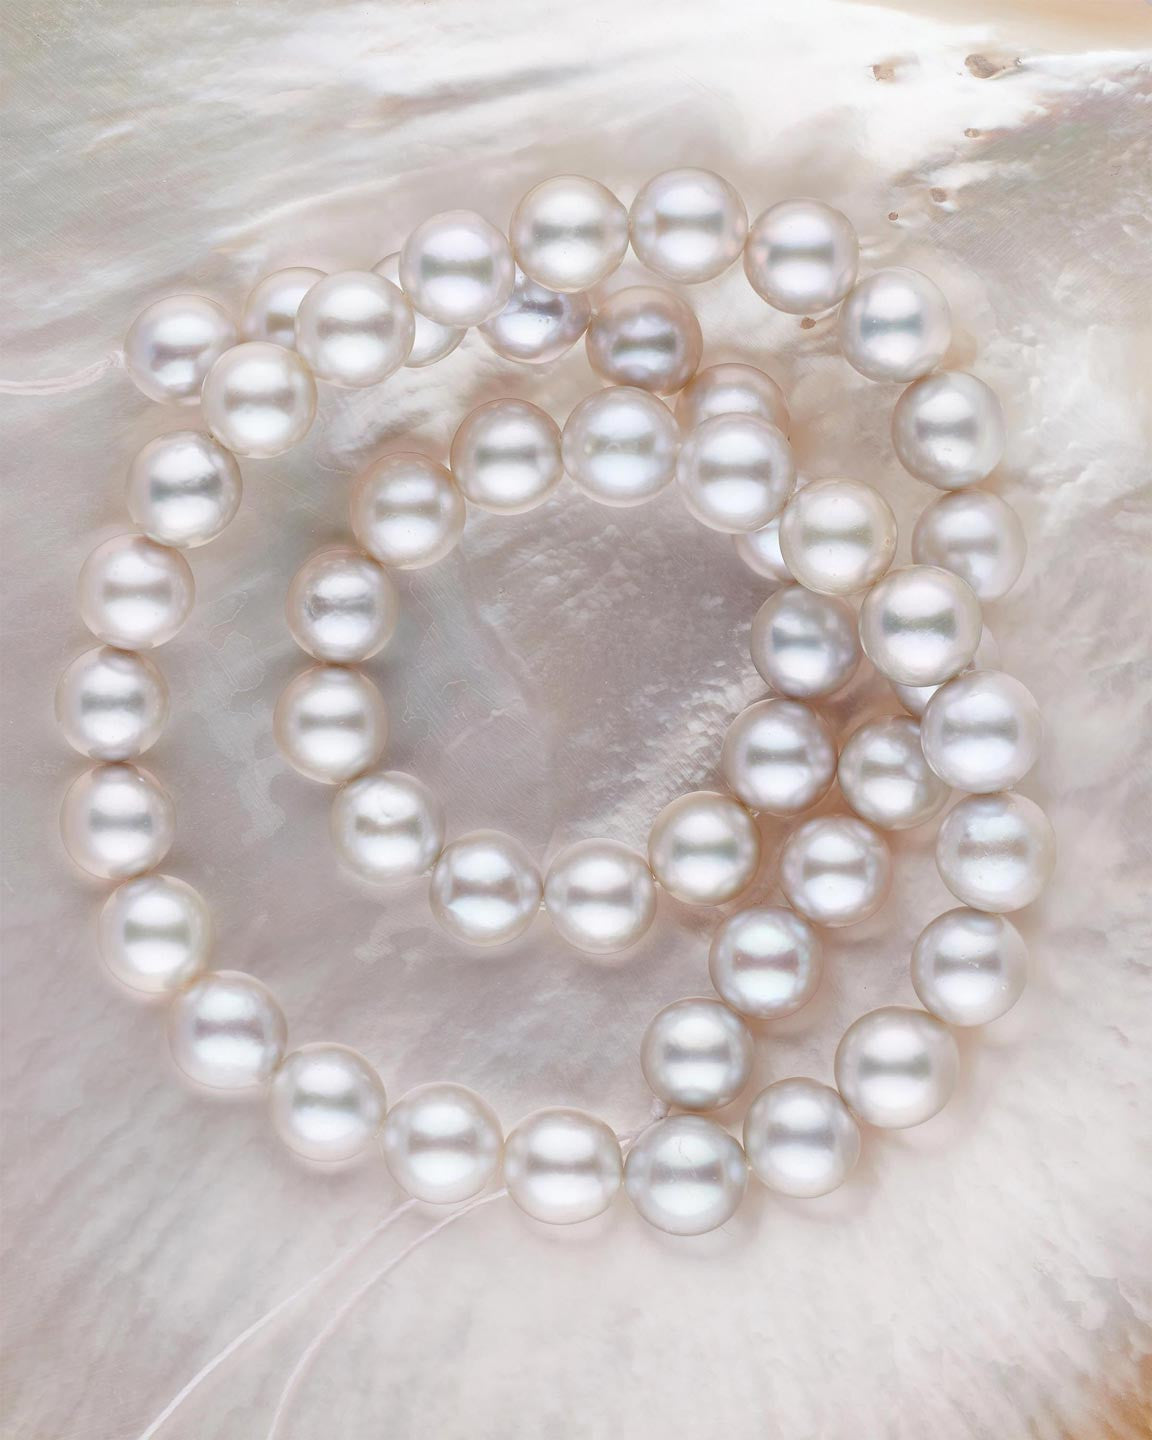 Red Sea Cultured Pearls: yes, they do exist